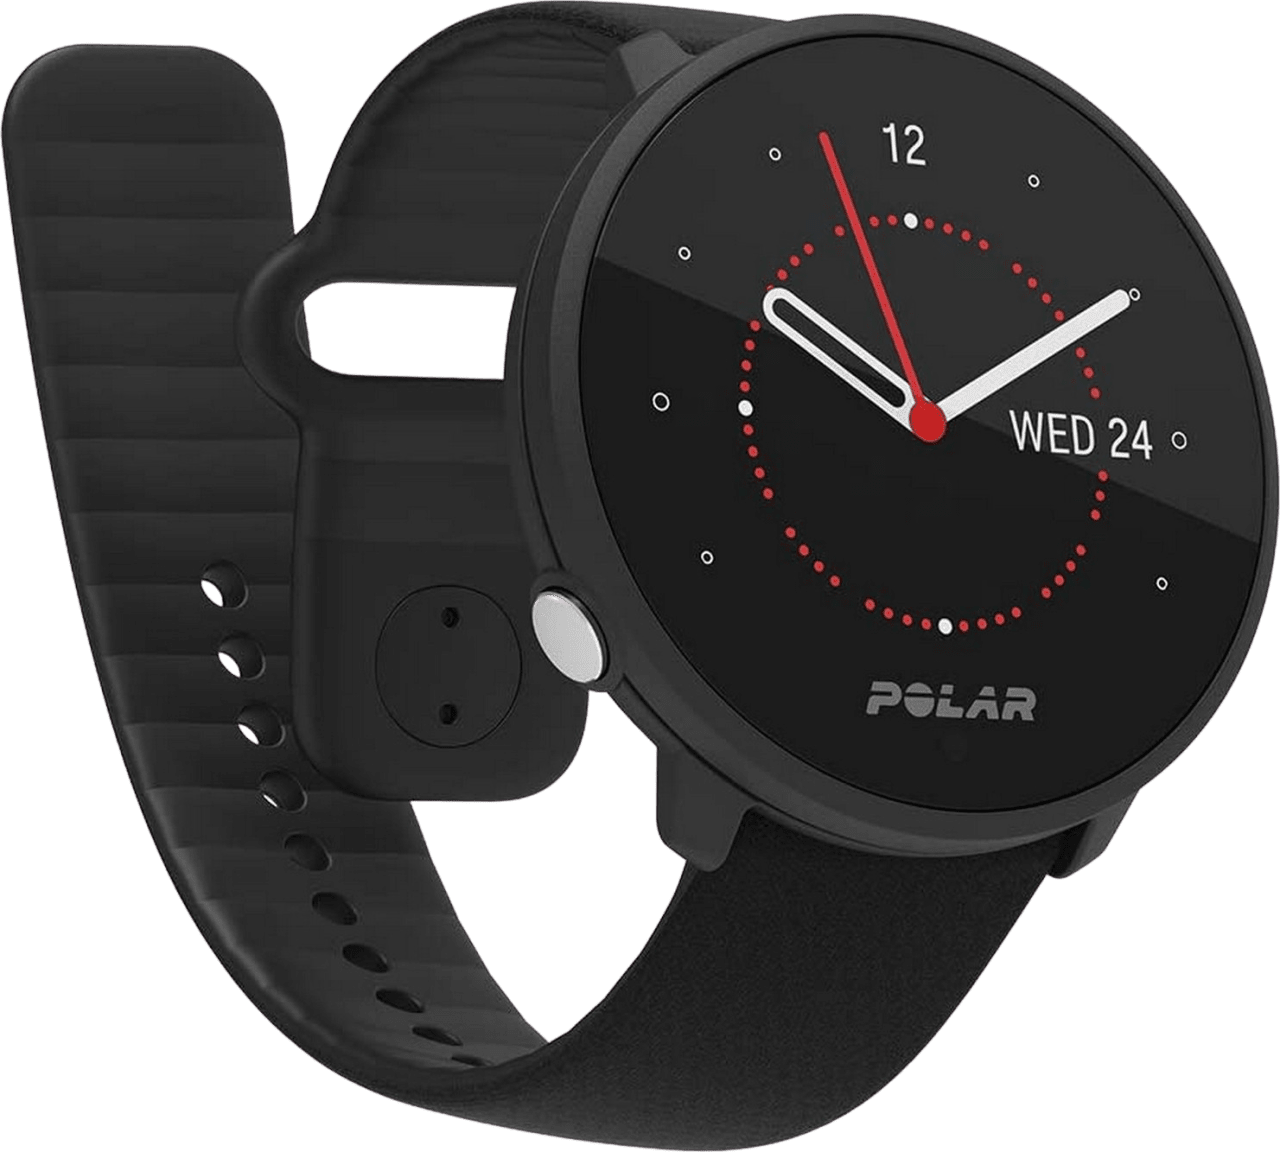 Black Polar Unite GPS Sports watch.1